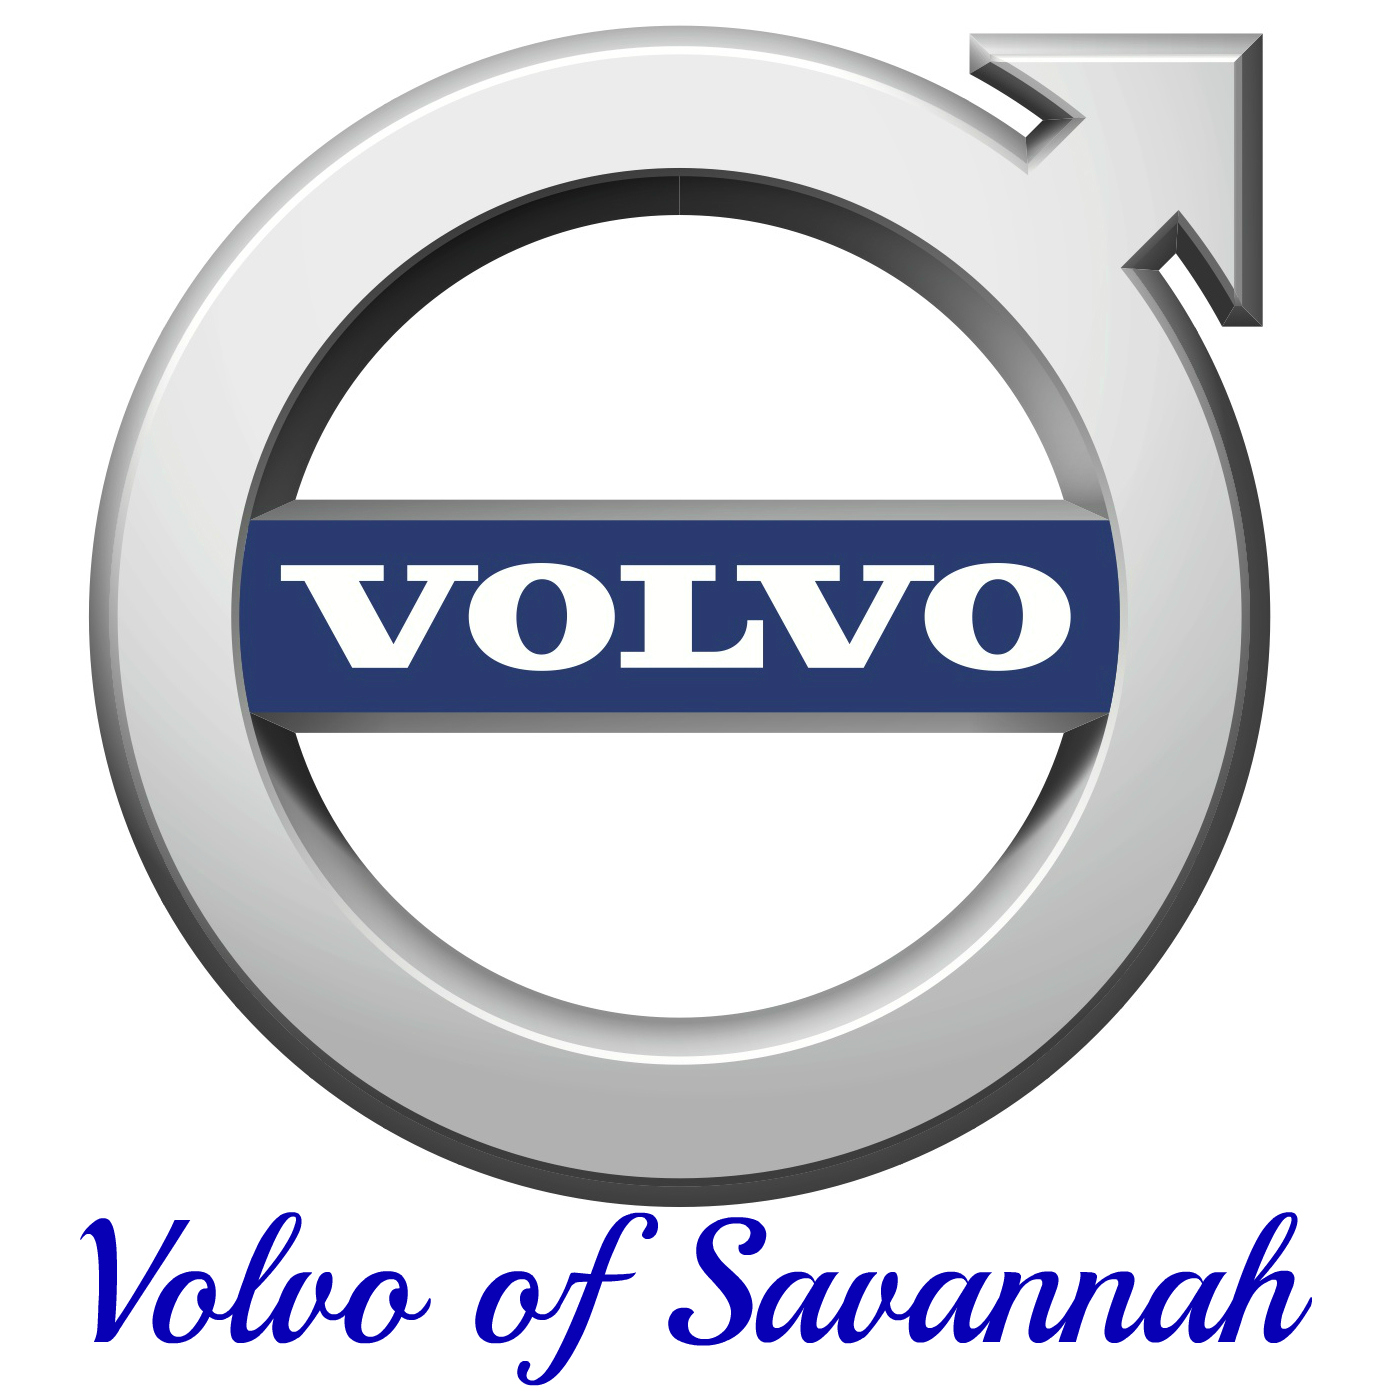 Volvo of Savannah Logo